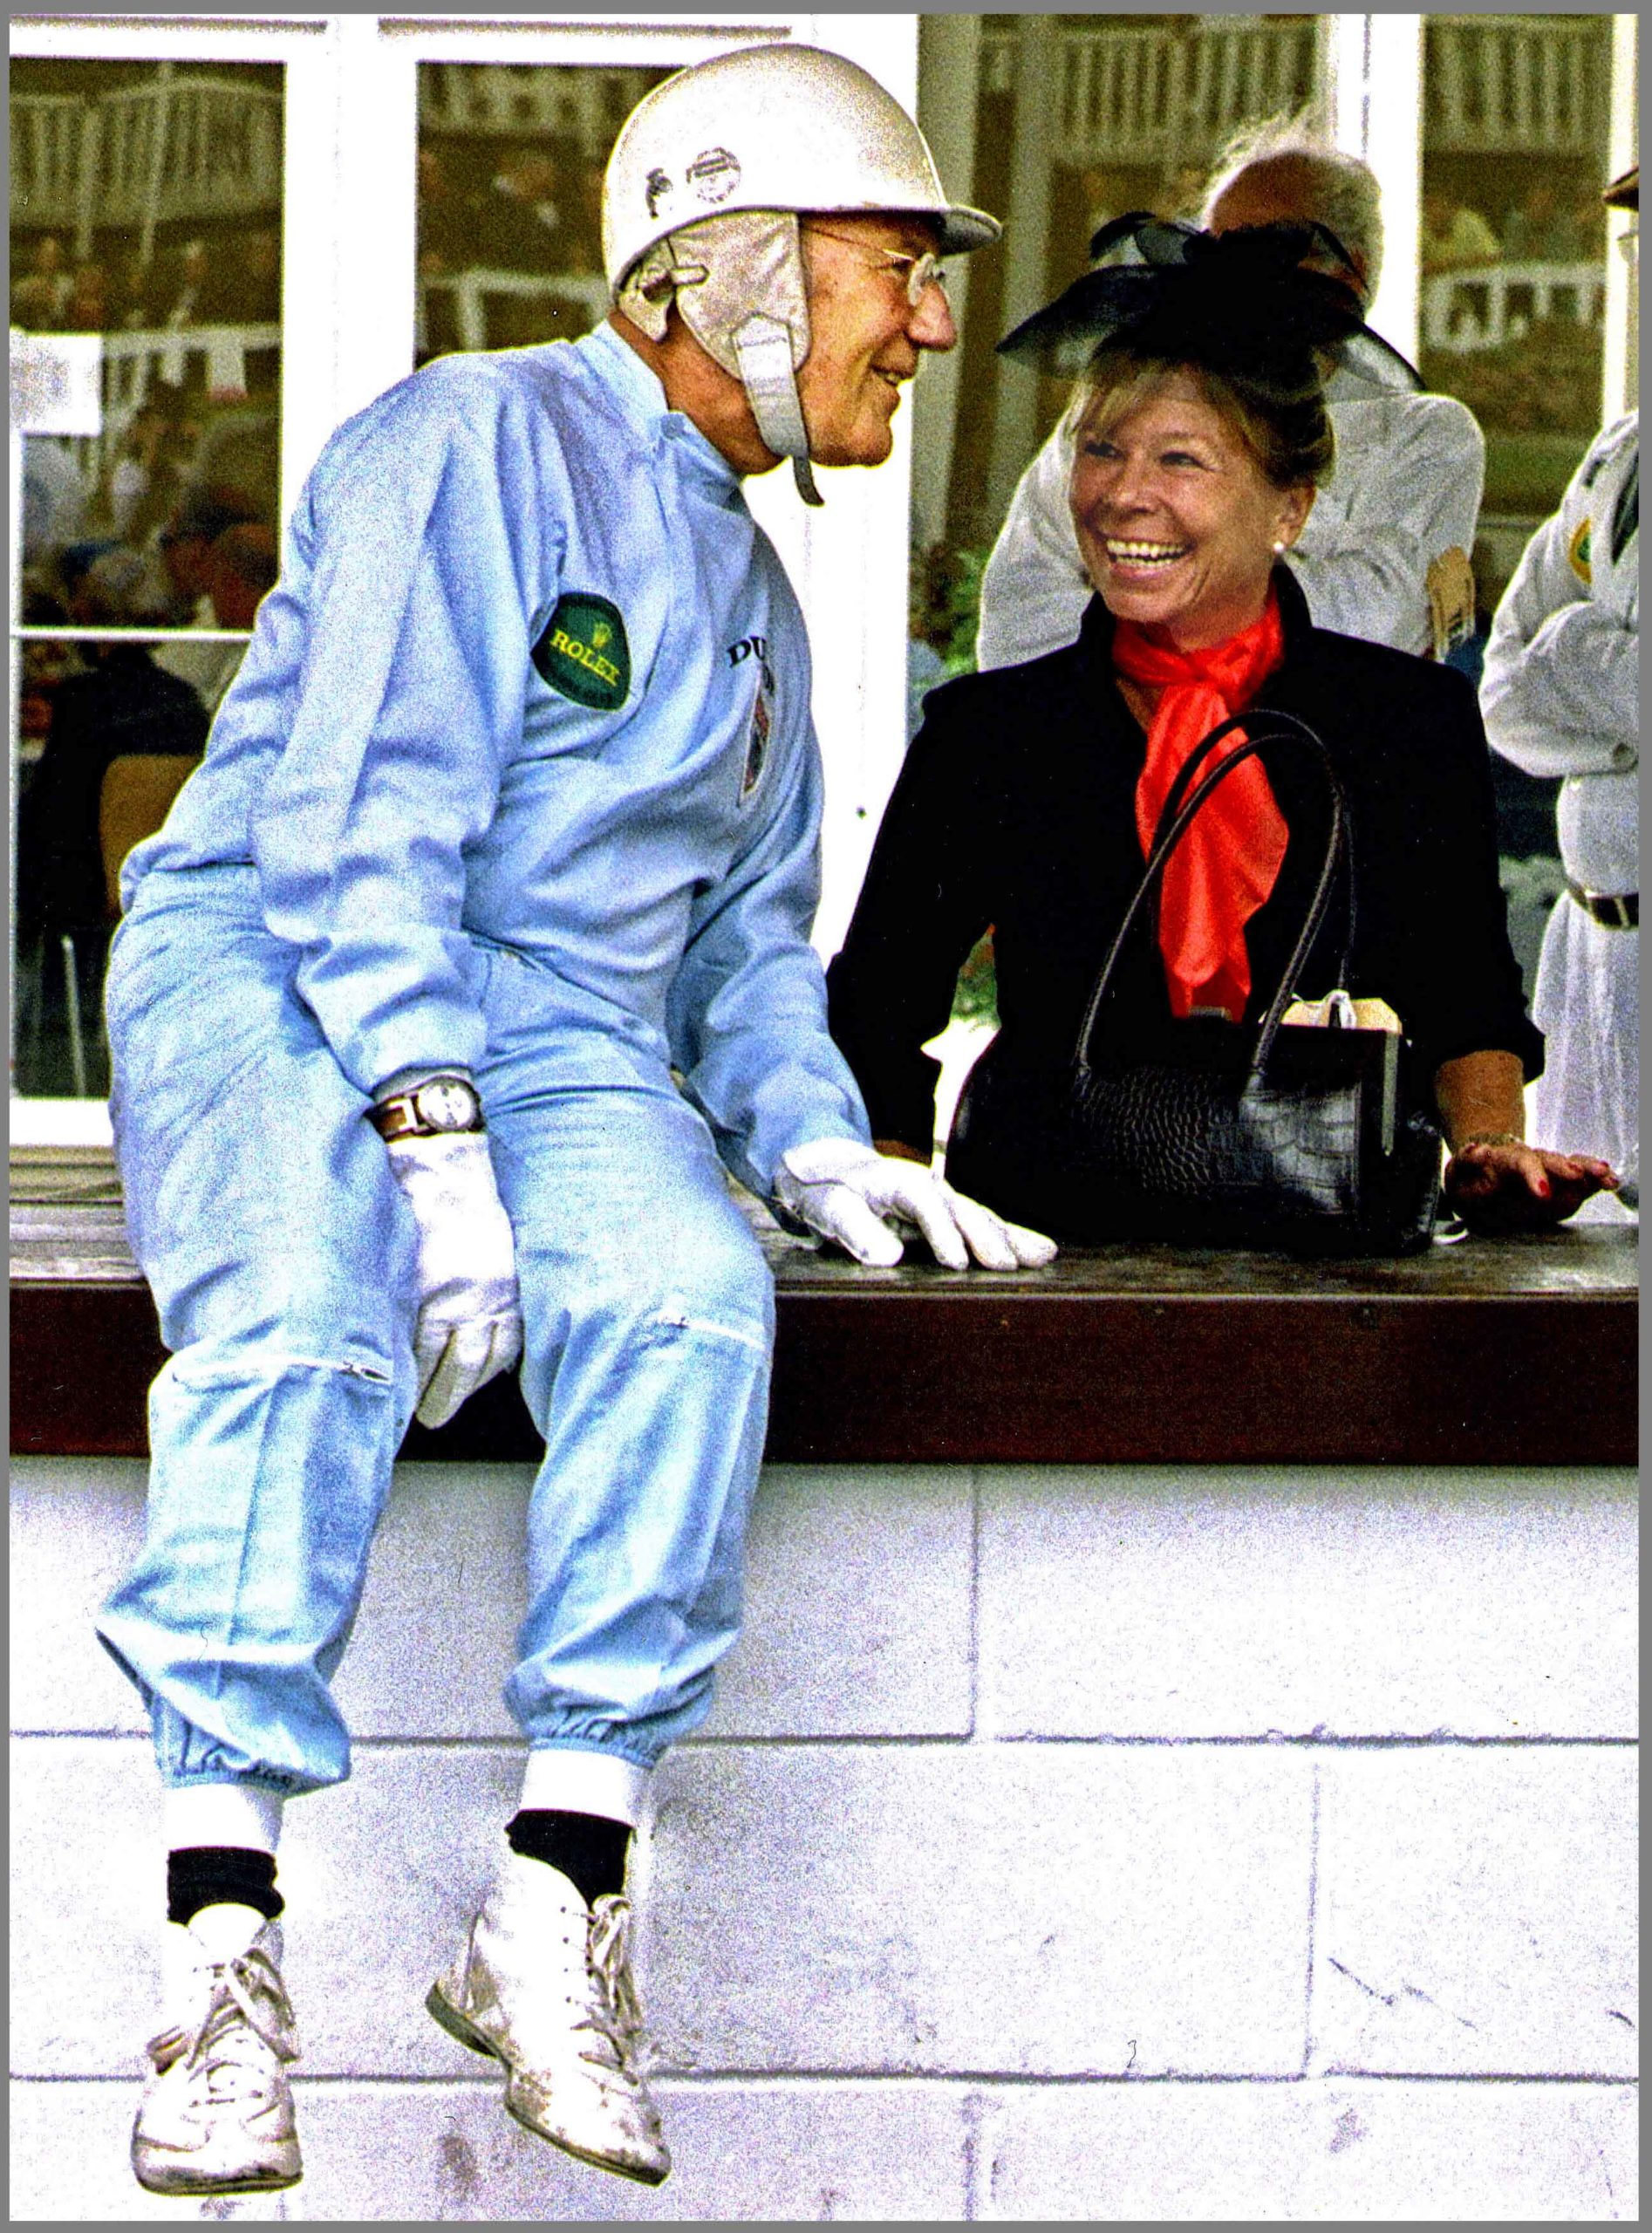 Stirling Moss on Goodwood pitwall with Susie Moss